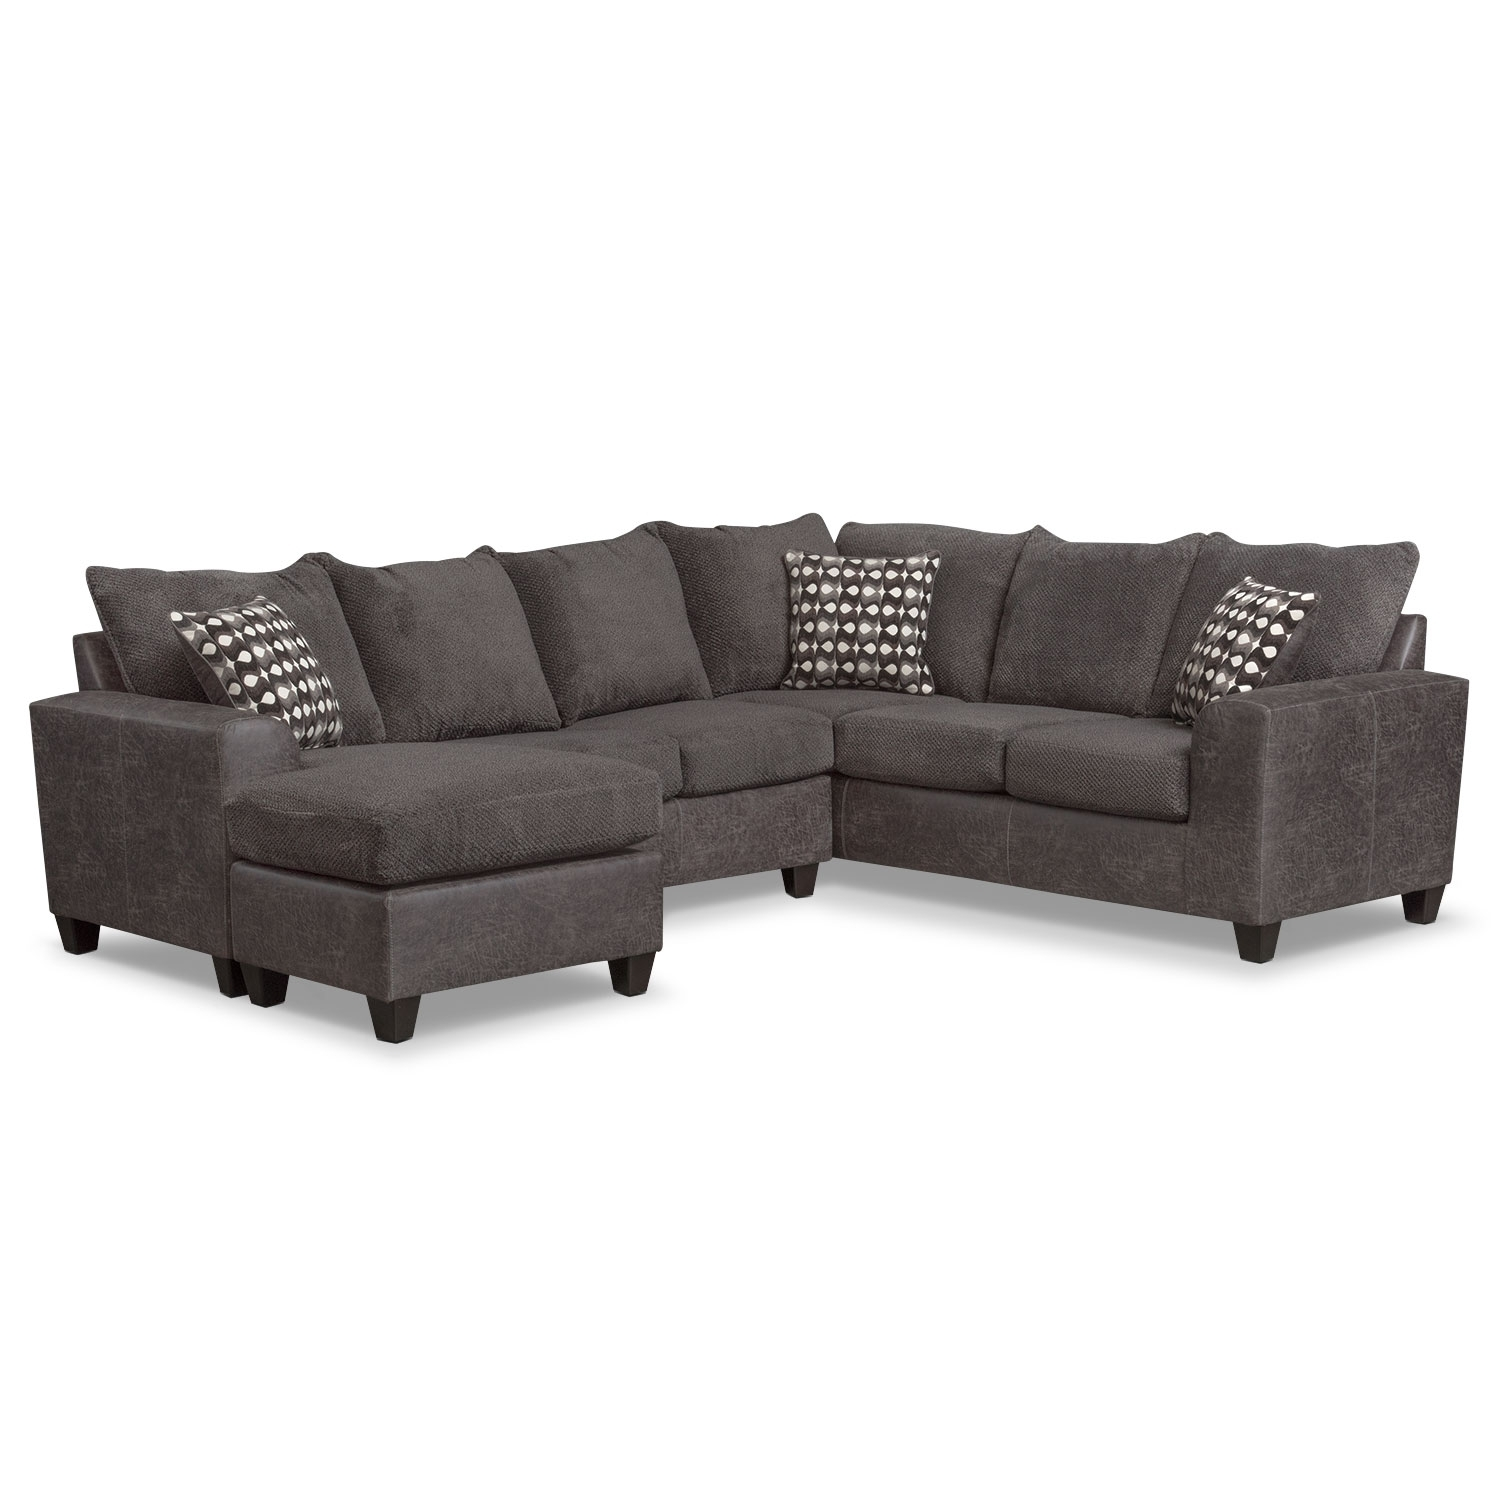 Brando 3-Piece Sectional With Modular Chaise - Smoke | American throughout Aurora 2 Piece Sectionals (Image 12 of 30)